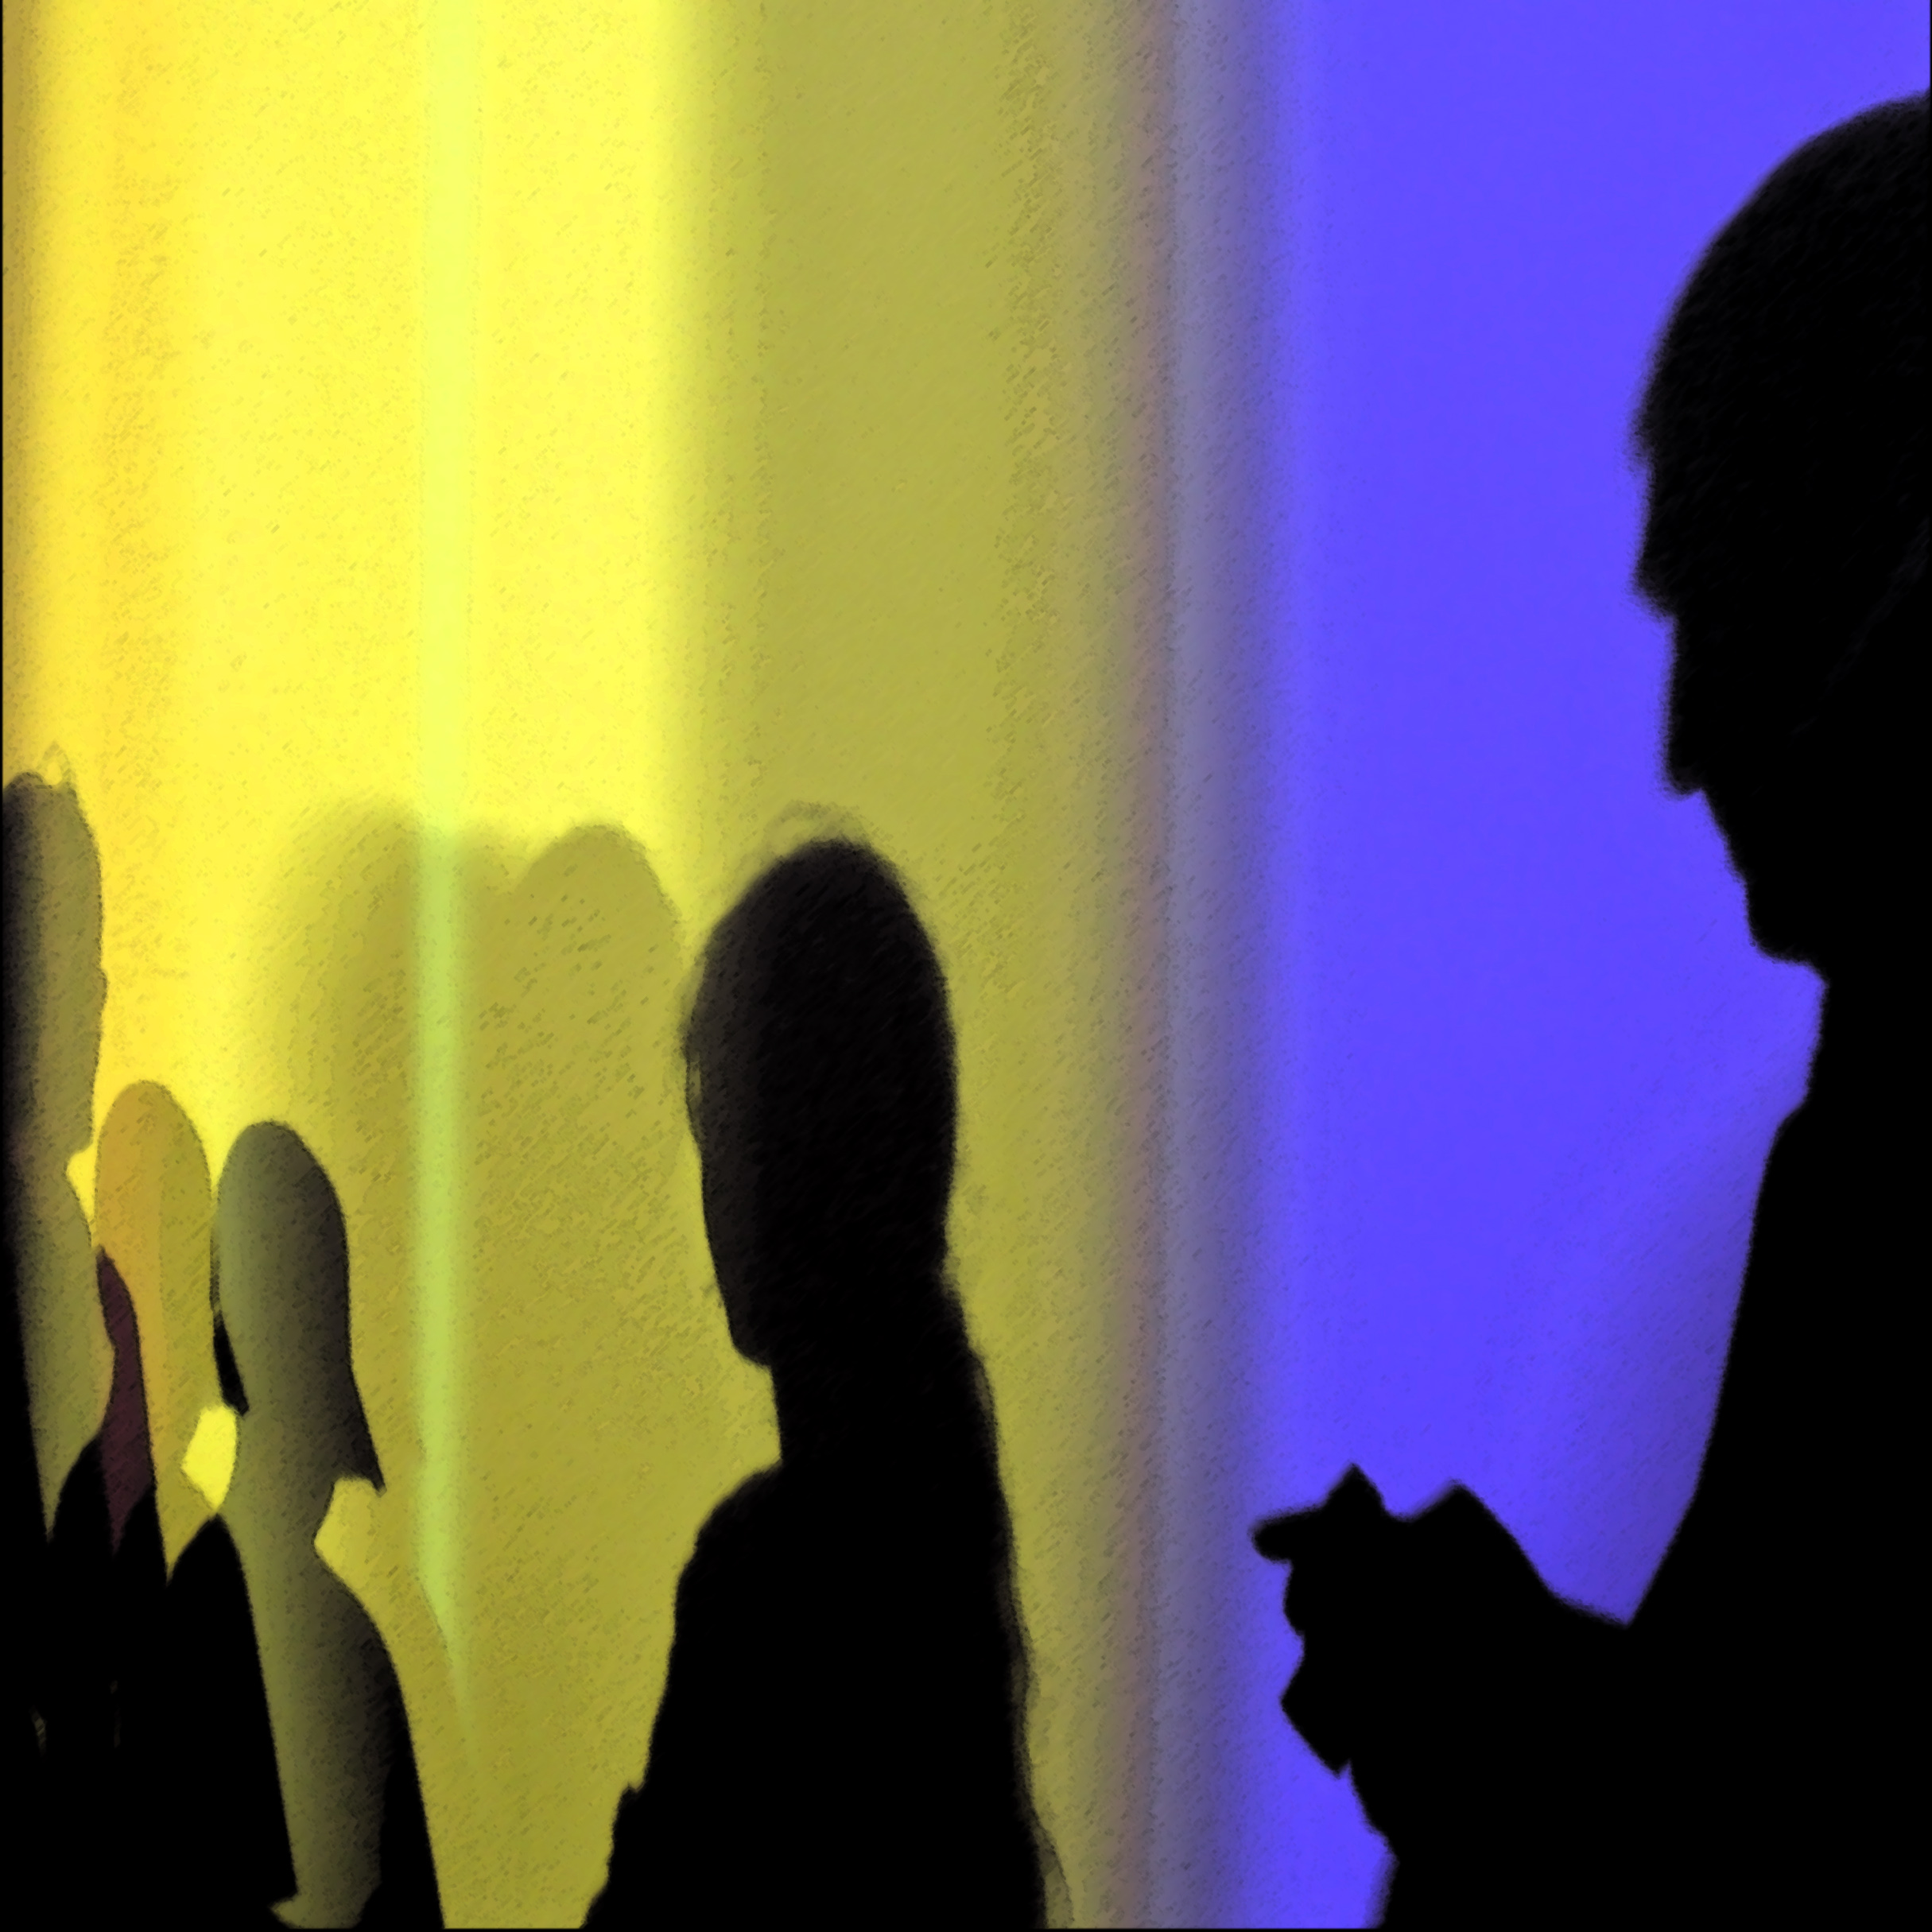 Shadow of family cast by vert. bands of blue and yellow light. Dad holds phone.